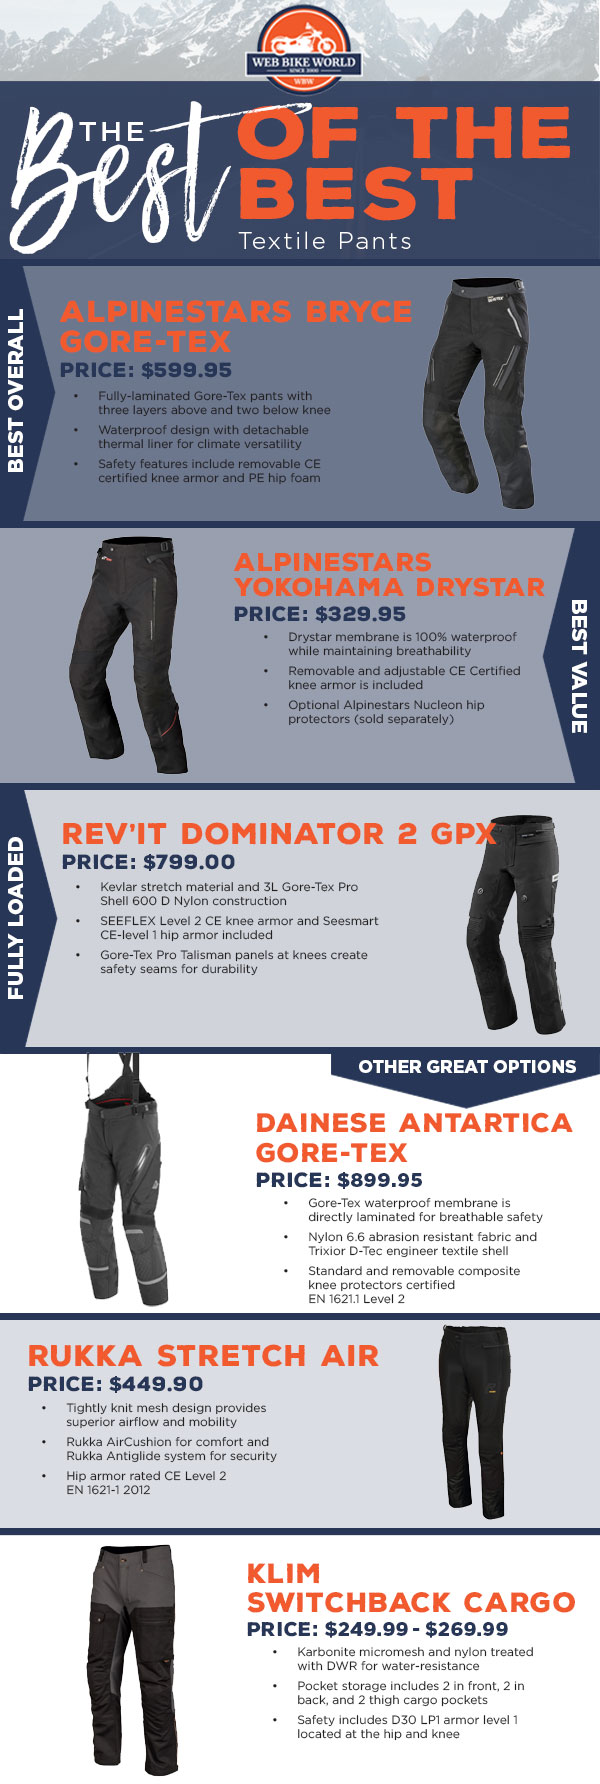 The Best Textile Pants Infographic 2019